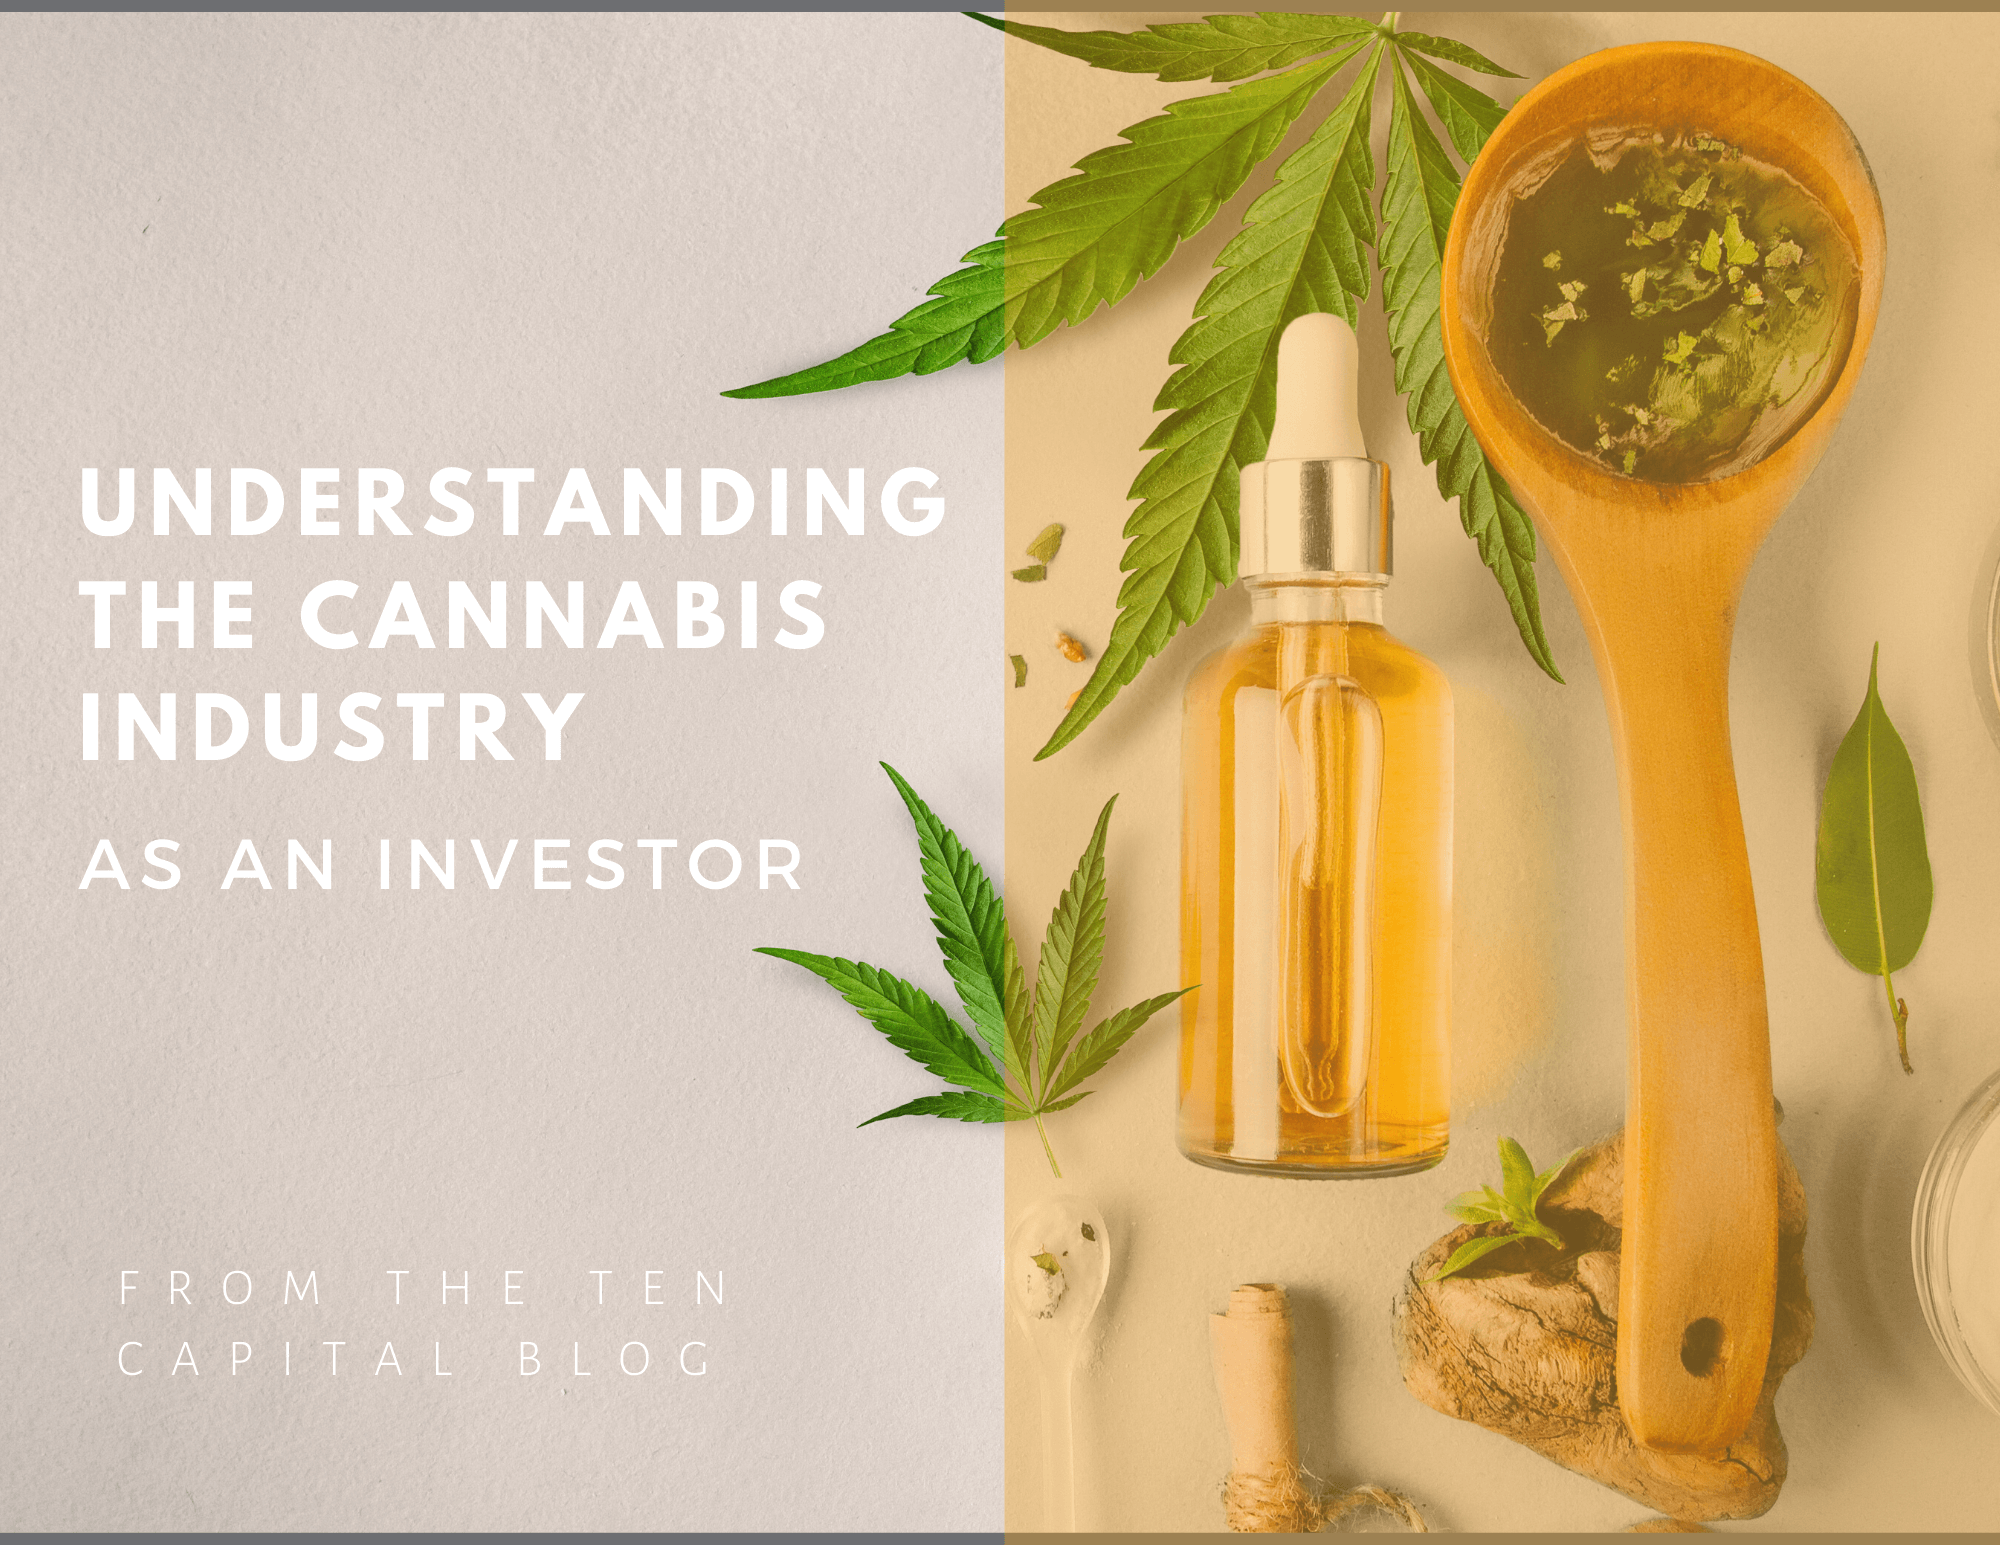 Investing in Cannabis, Cannabusiness